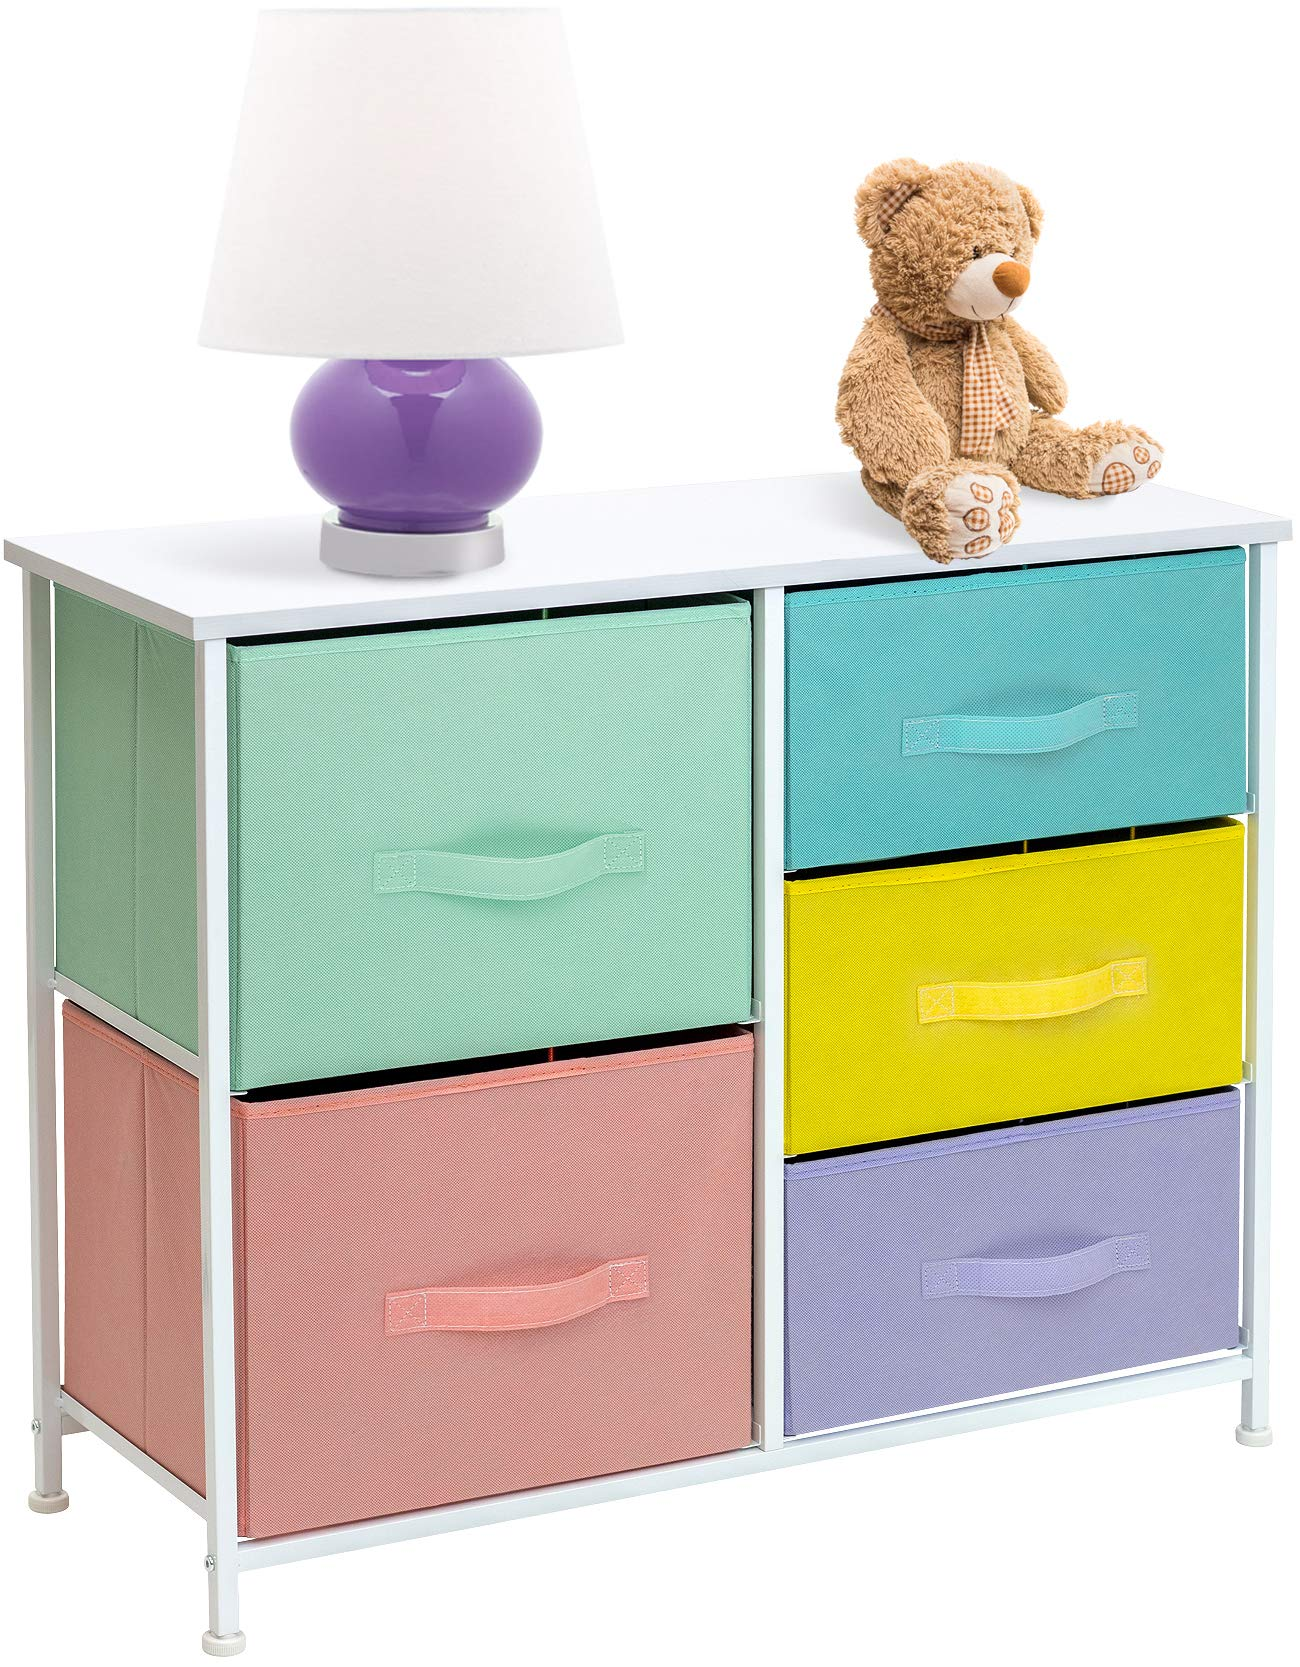 Sorbus Dresser with 5 Drawers Furniture Storage Tower Chest for Kid's, Teens, Bedroom, Nursery, Playroom, Closet, Clothes, Toy Organization-Steel Frame, Wood Top, Easy Pull Fabric Bins (Pastel) by Sorbus